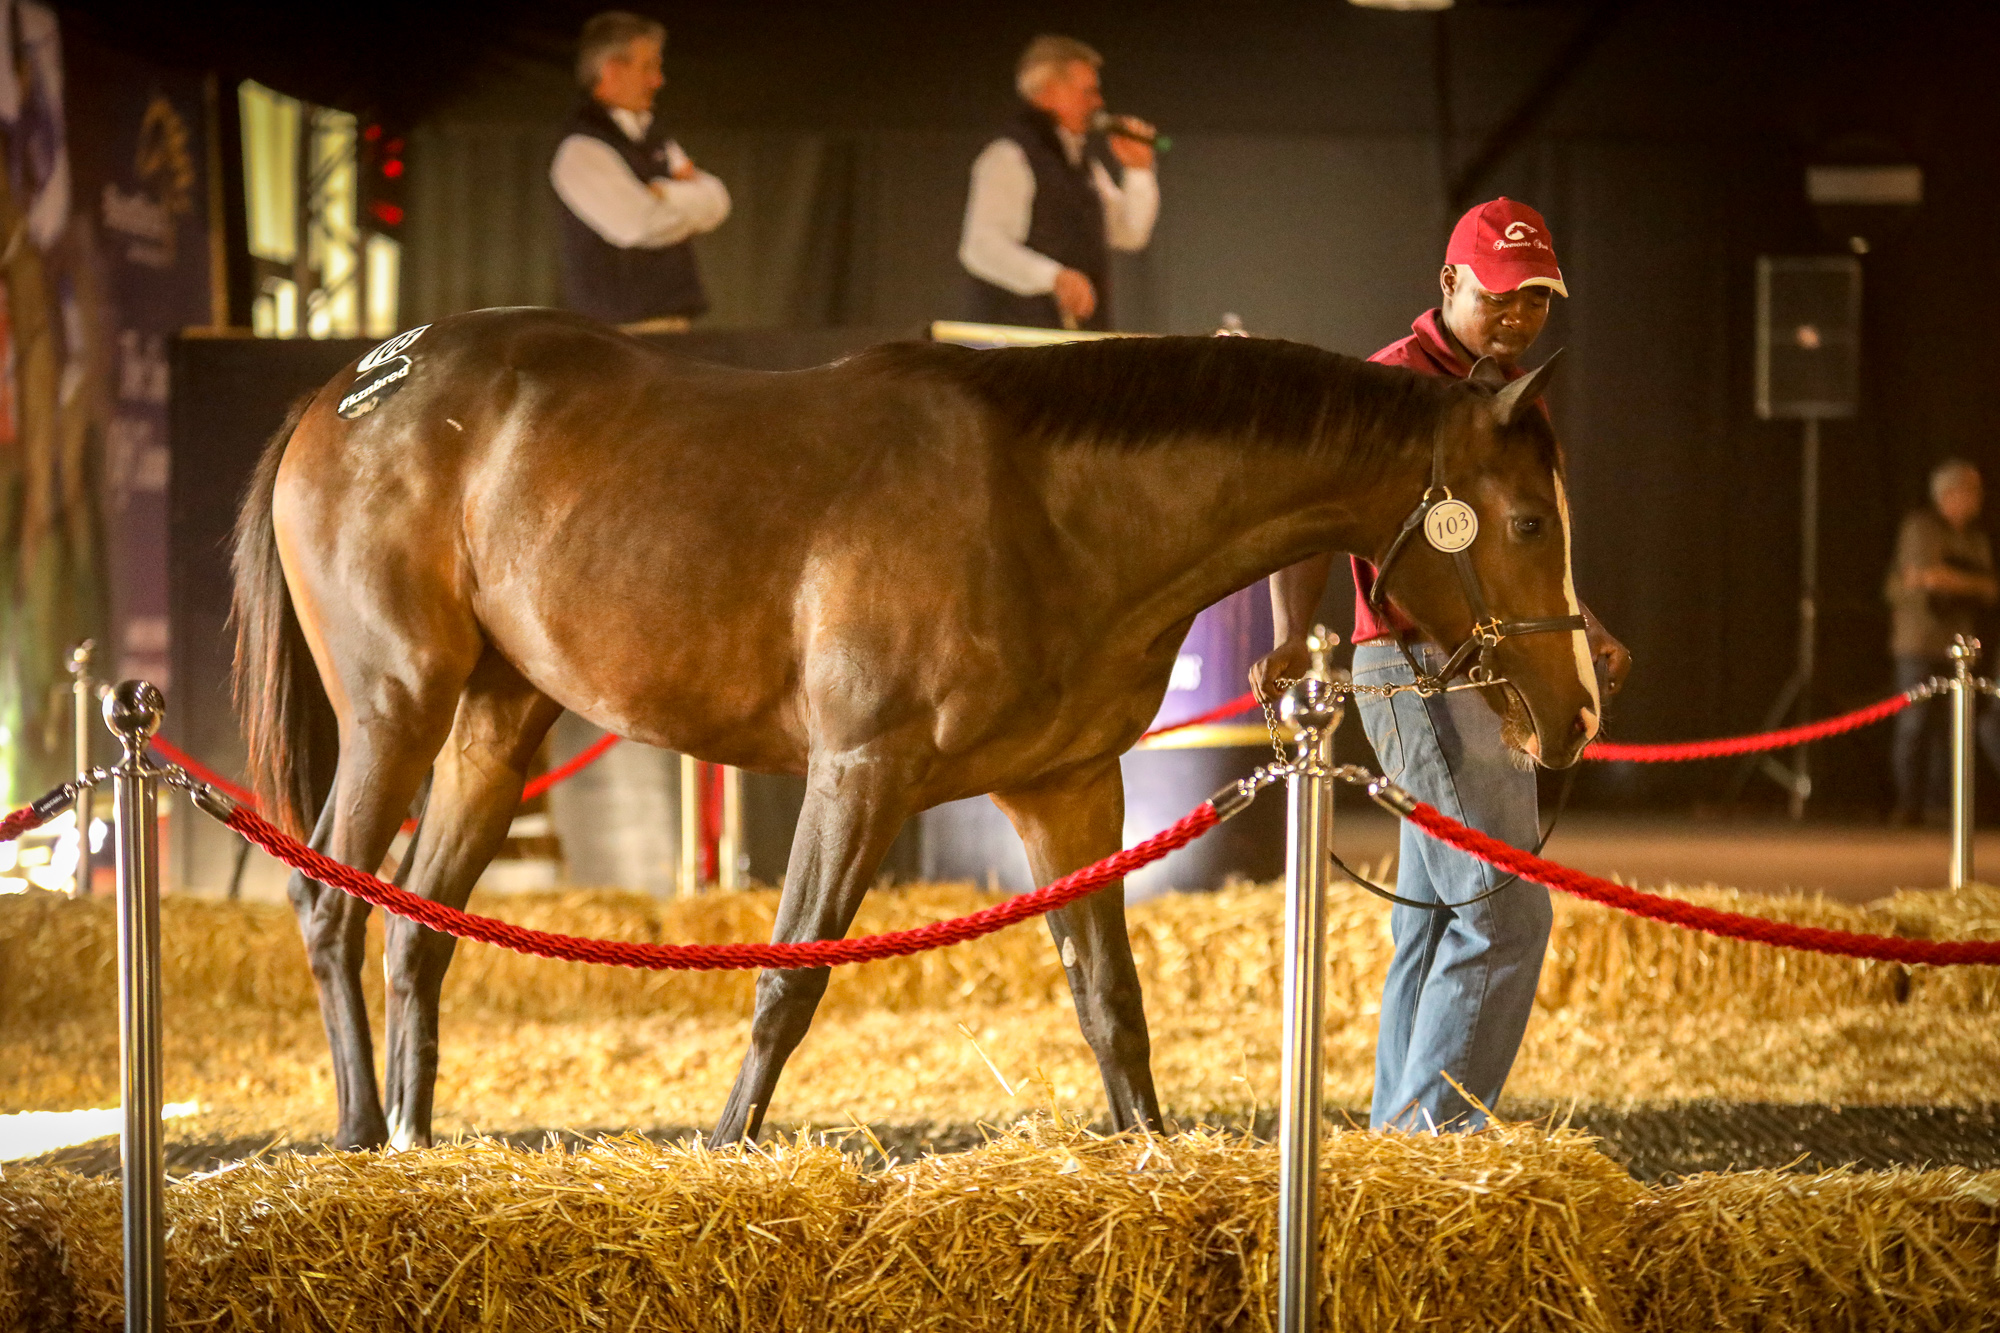 Brandina becomes the first winner for her sire Capetown Noir this afternoon at Fairview. Image: Candiese Marnewick